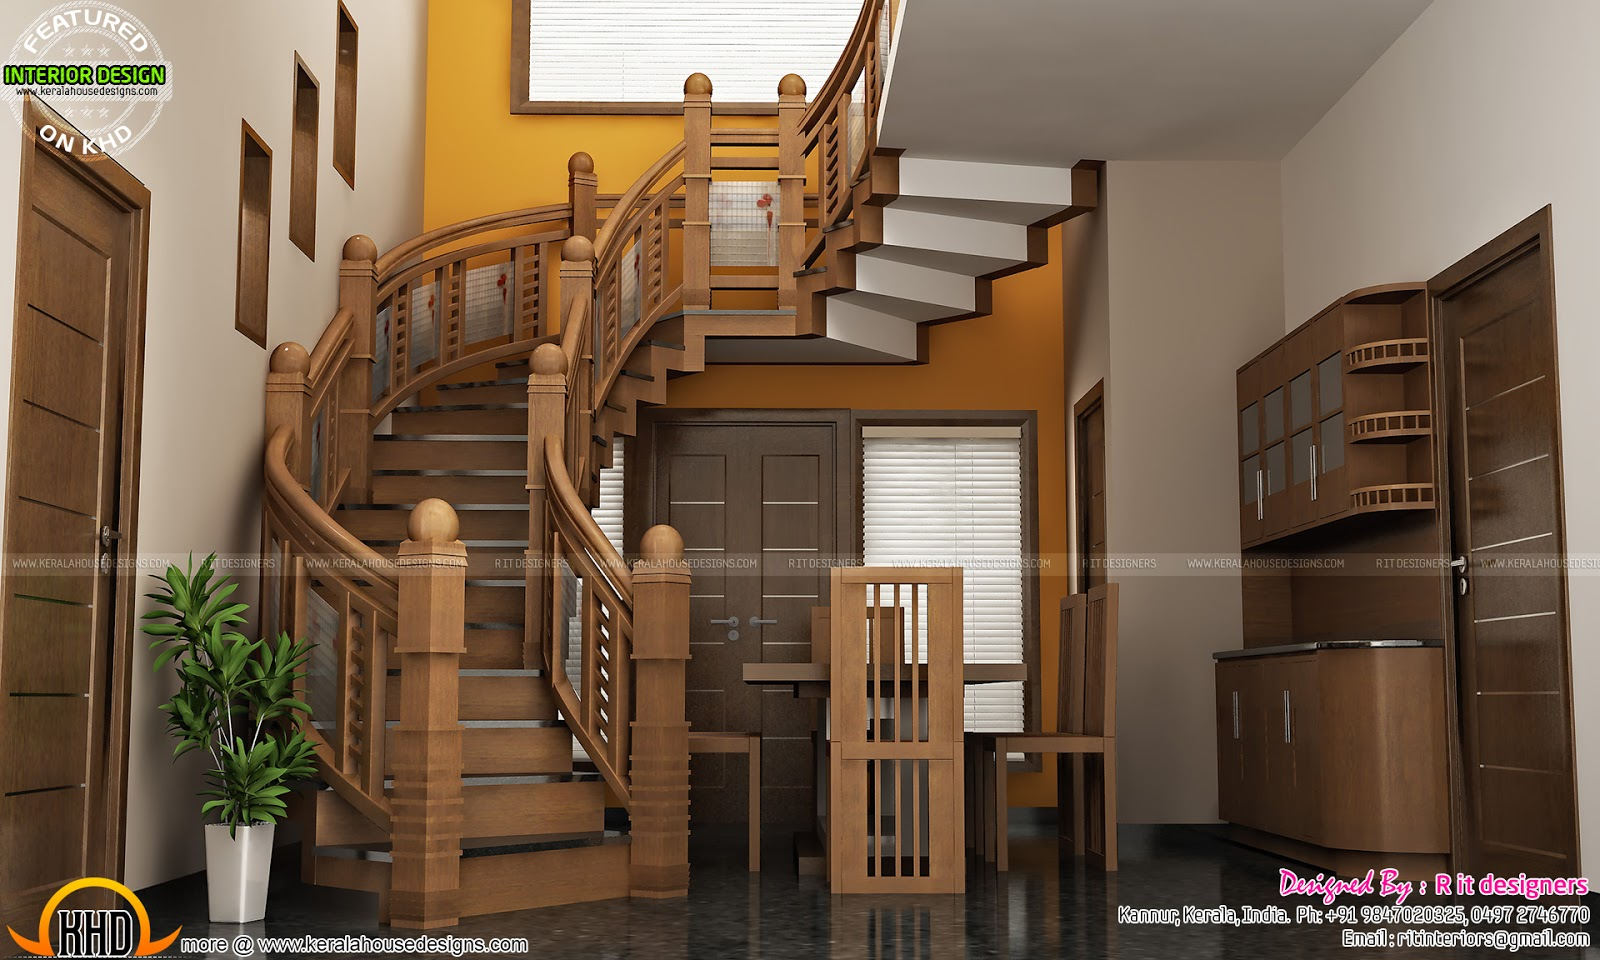 Under stair design wooden stair kitchen and living for House design inside